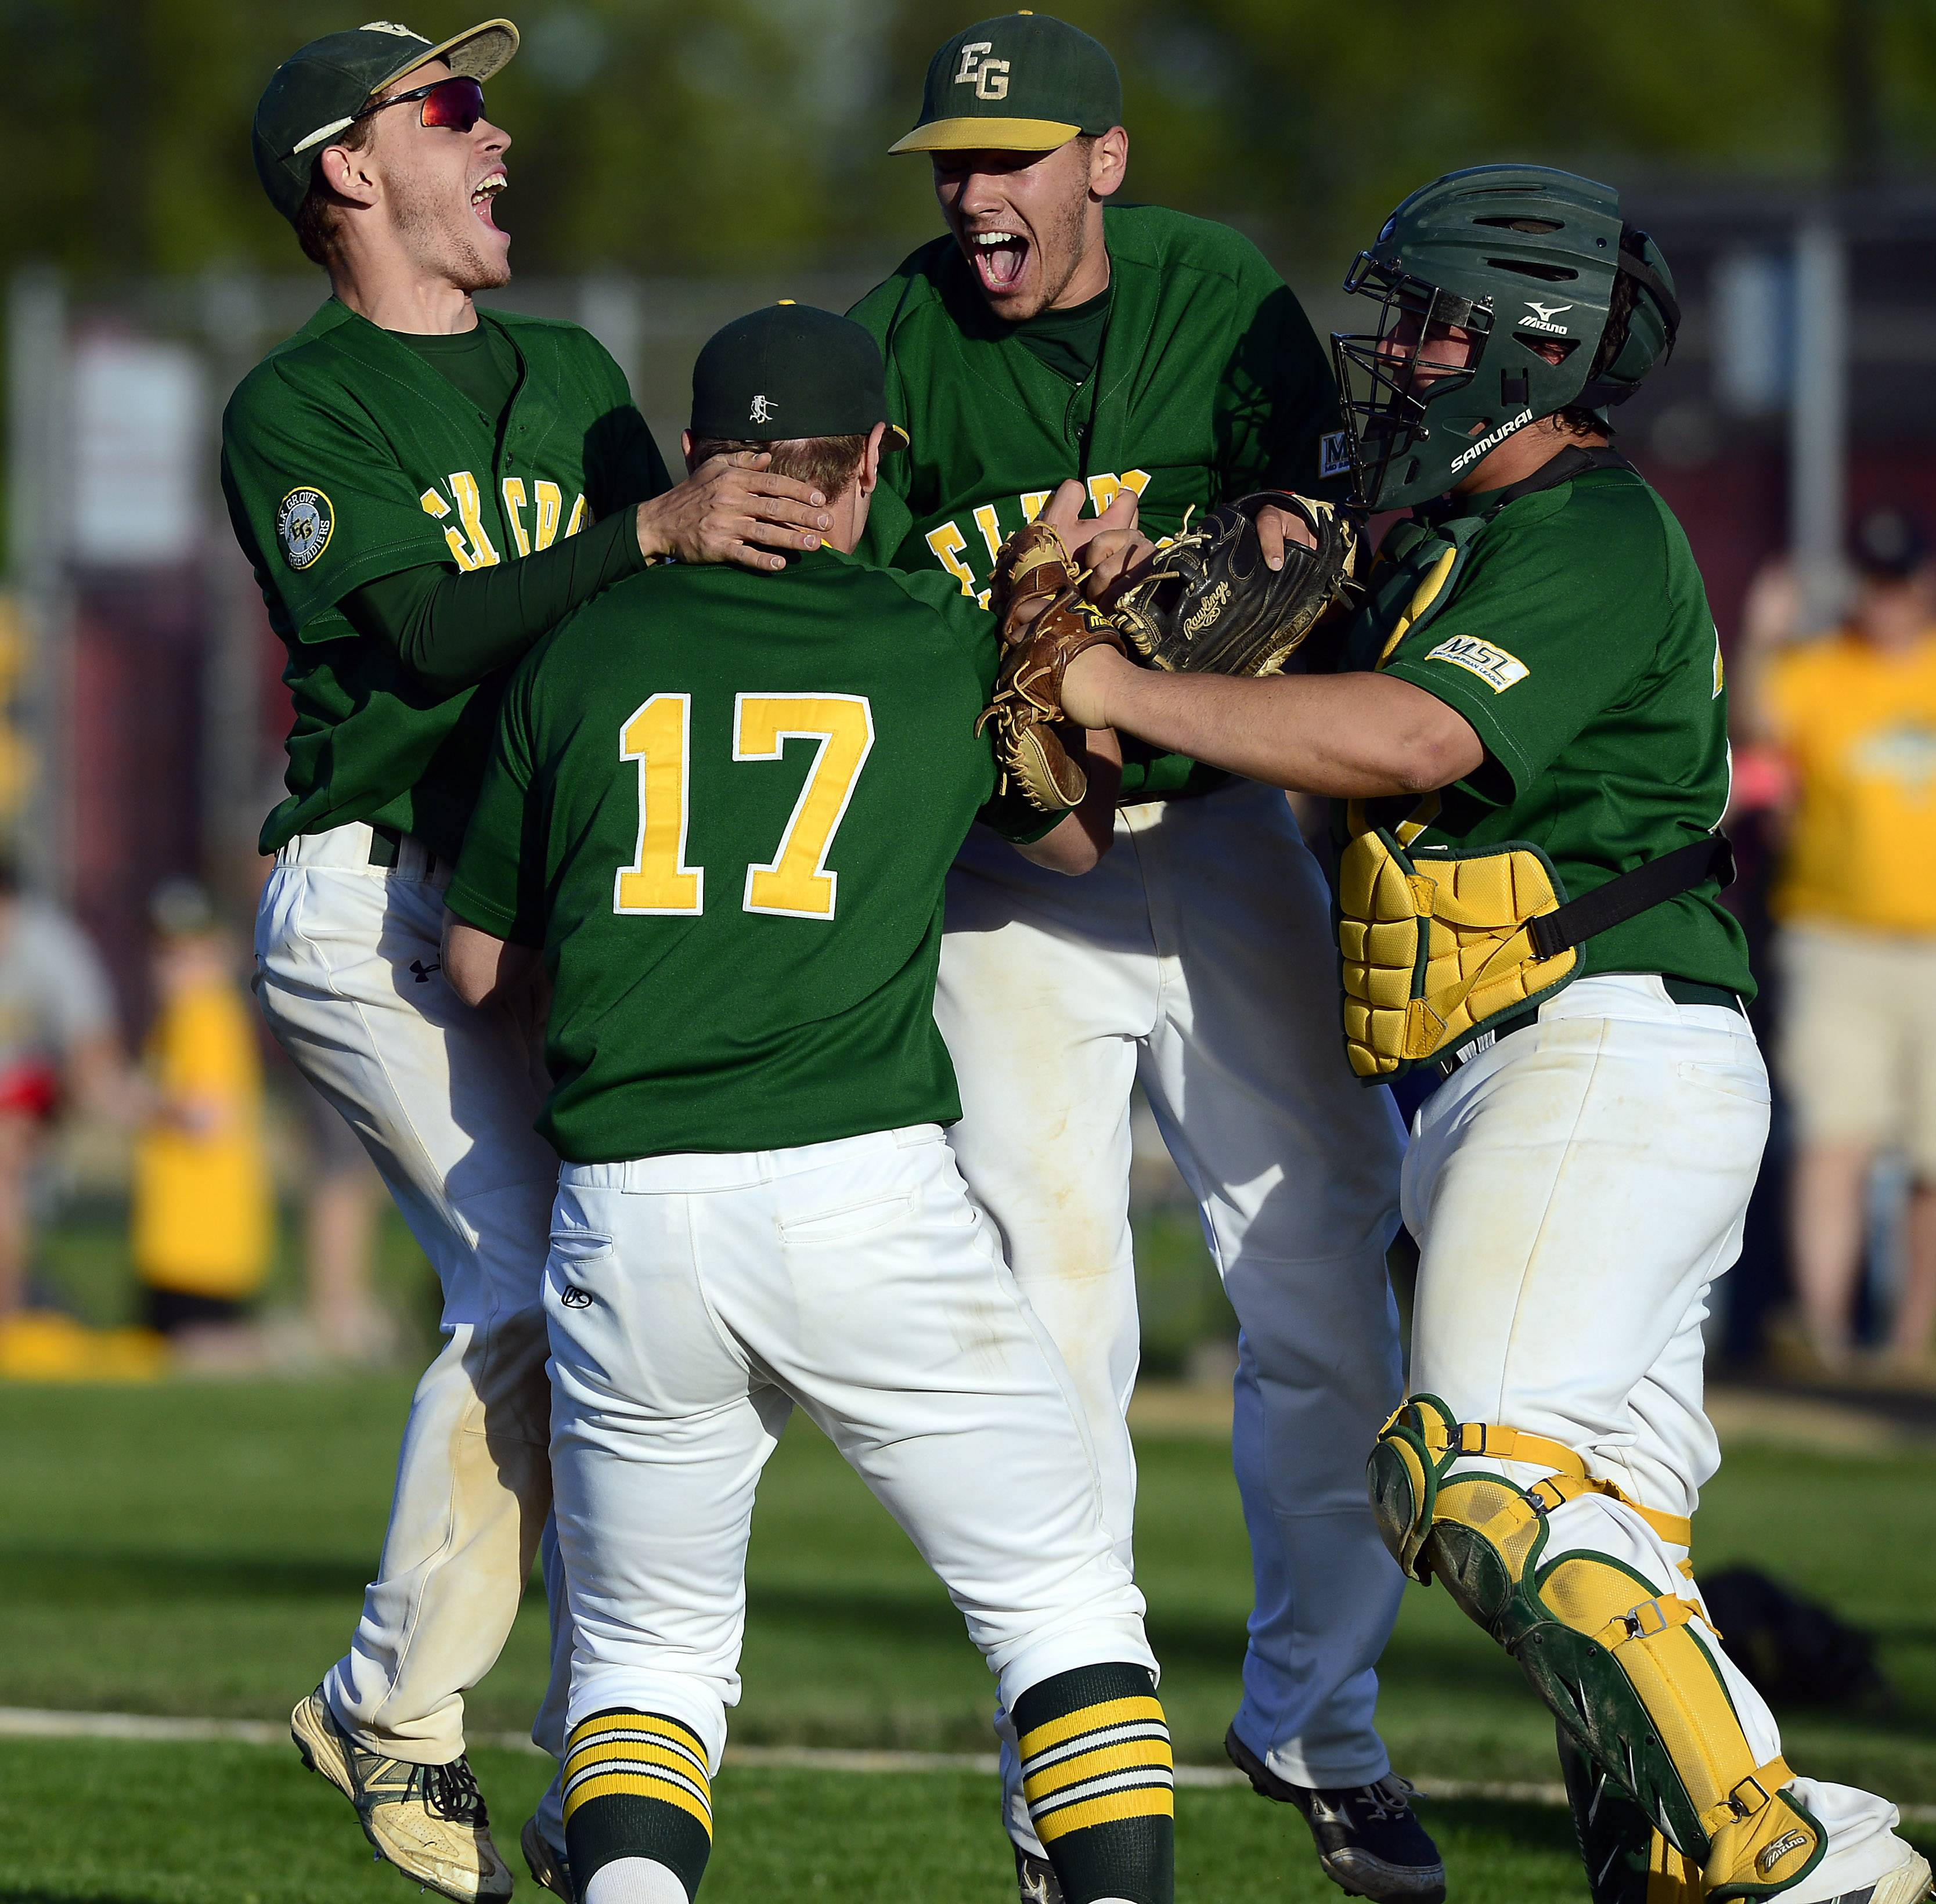 Elk Grove's Adam O'Malley (17) celebrates with his teammates after the Grens beat Schaumburg 4-0 in the Mid-Suburban League championship game at Schaumburg on Friday.